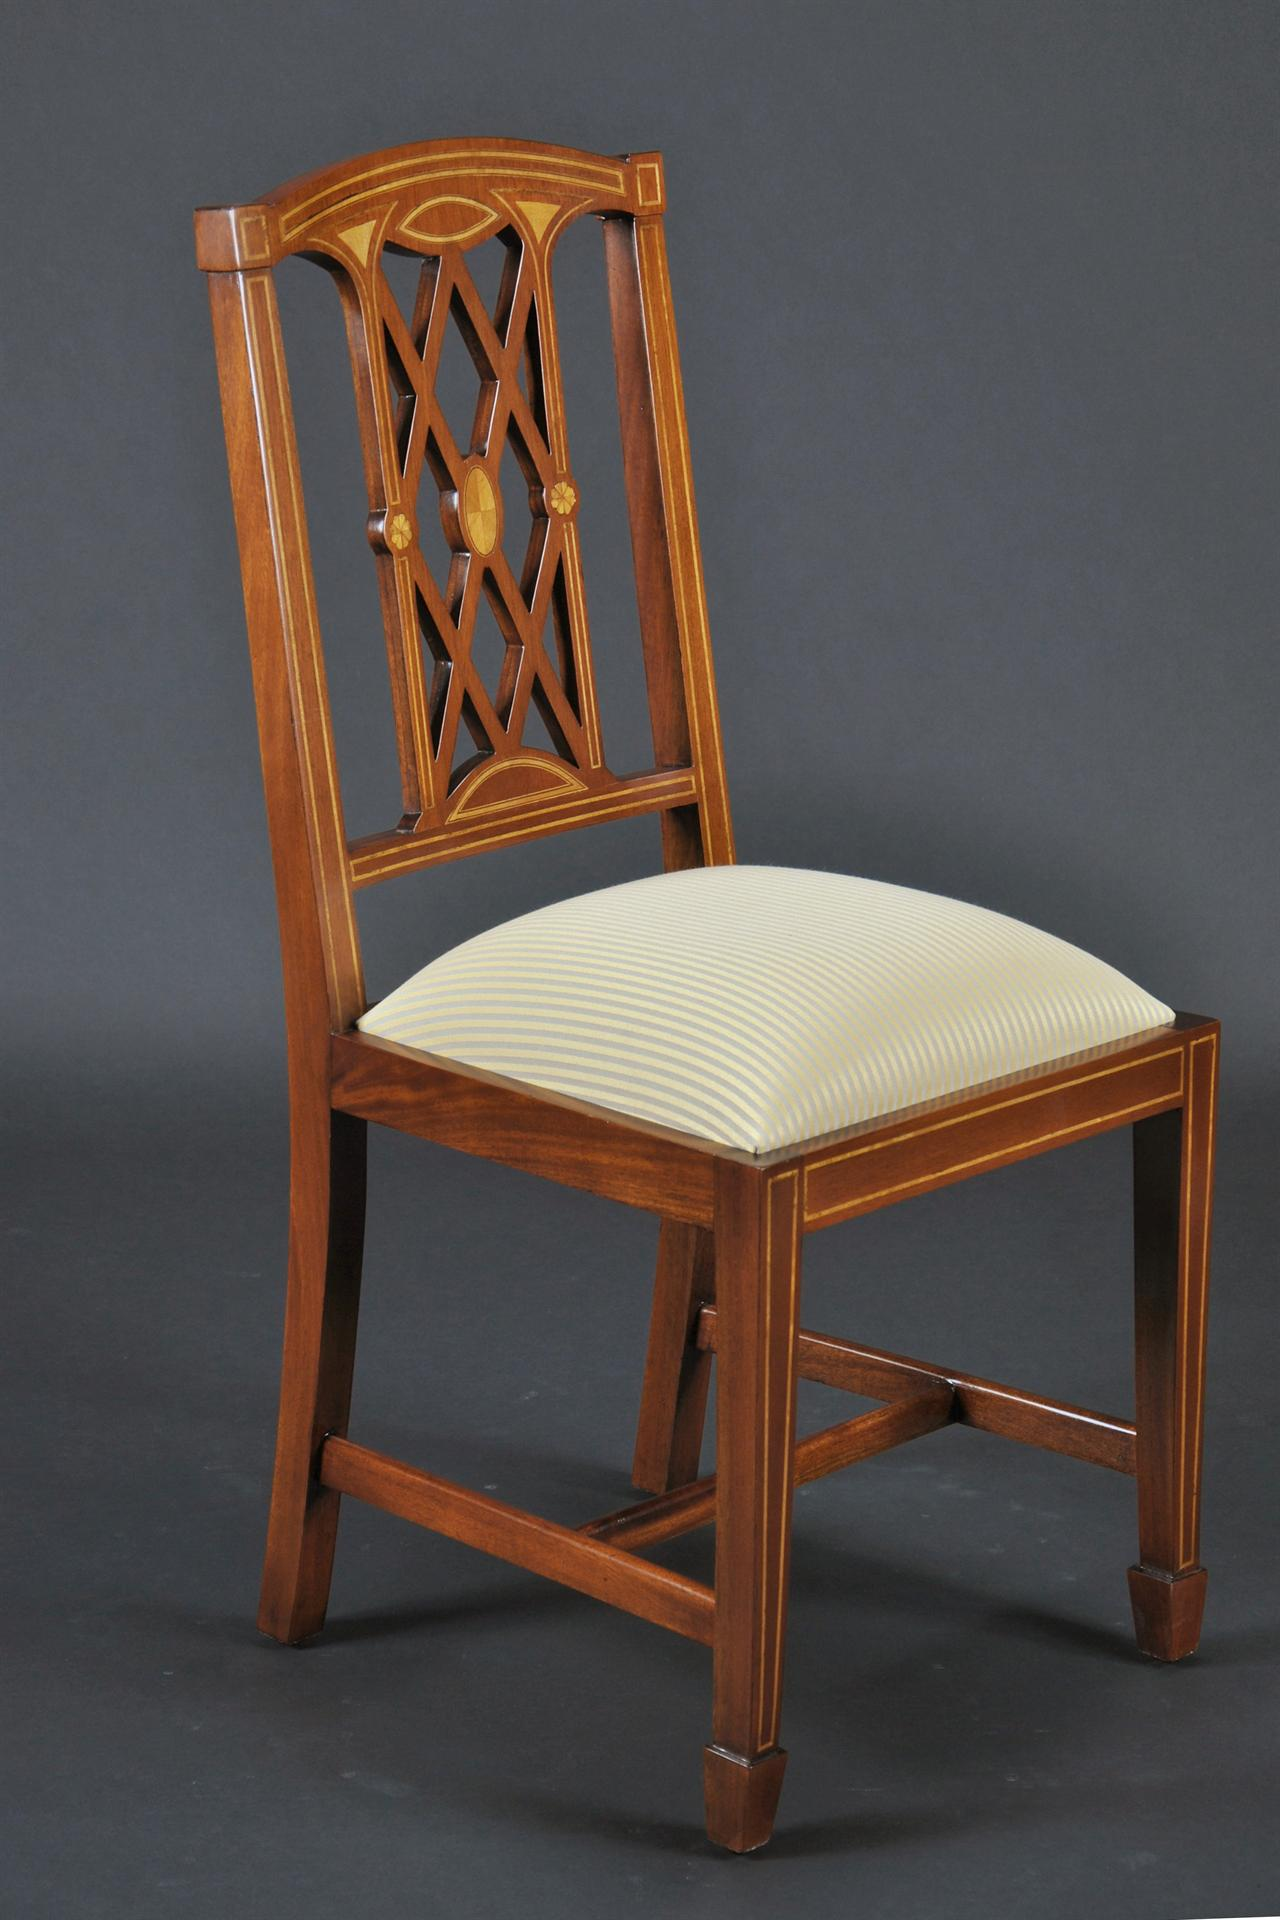 Edwardian Inlaid Solid Mahogany Dining Room Chairs